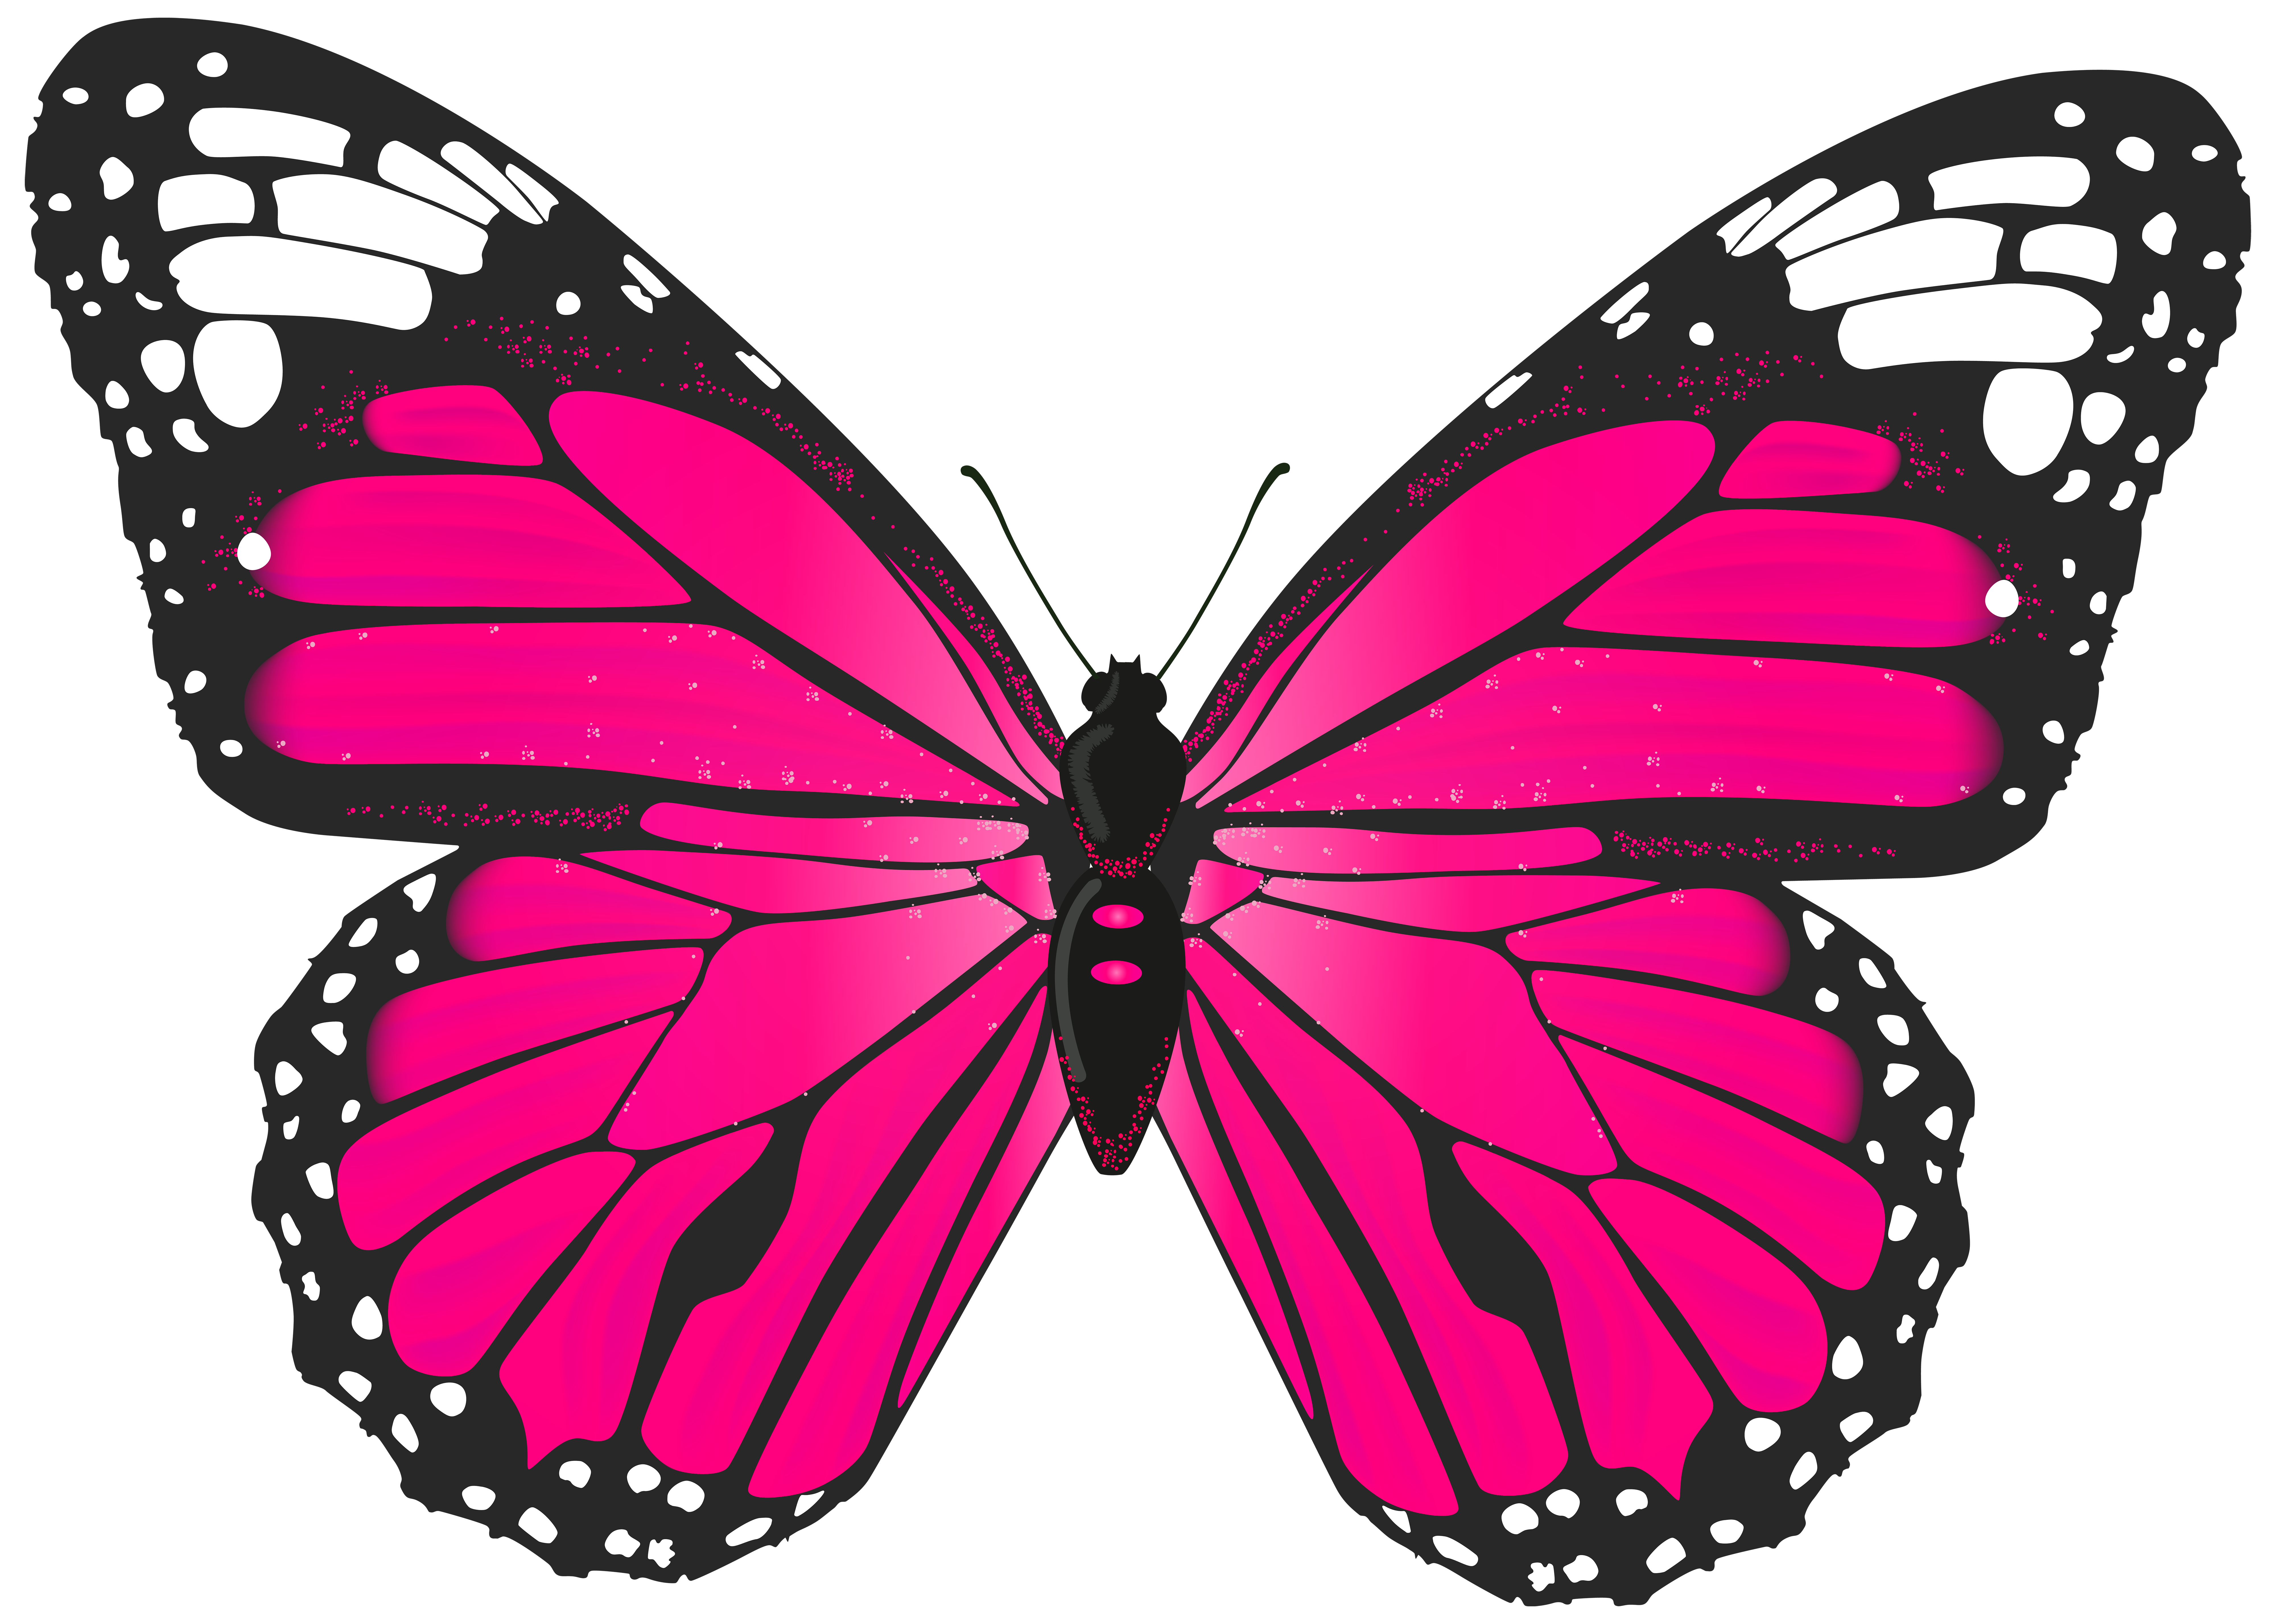 Butterfly png transparent clip. Moth clipart brown pink